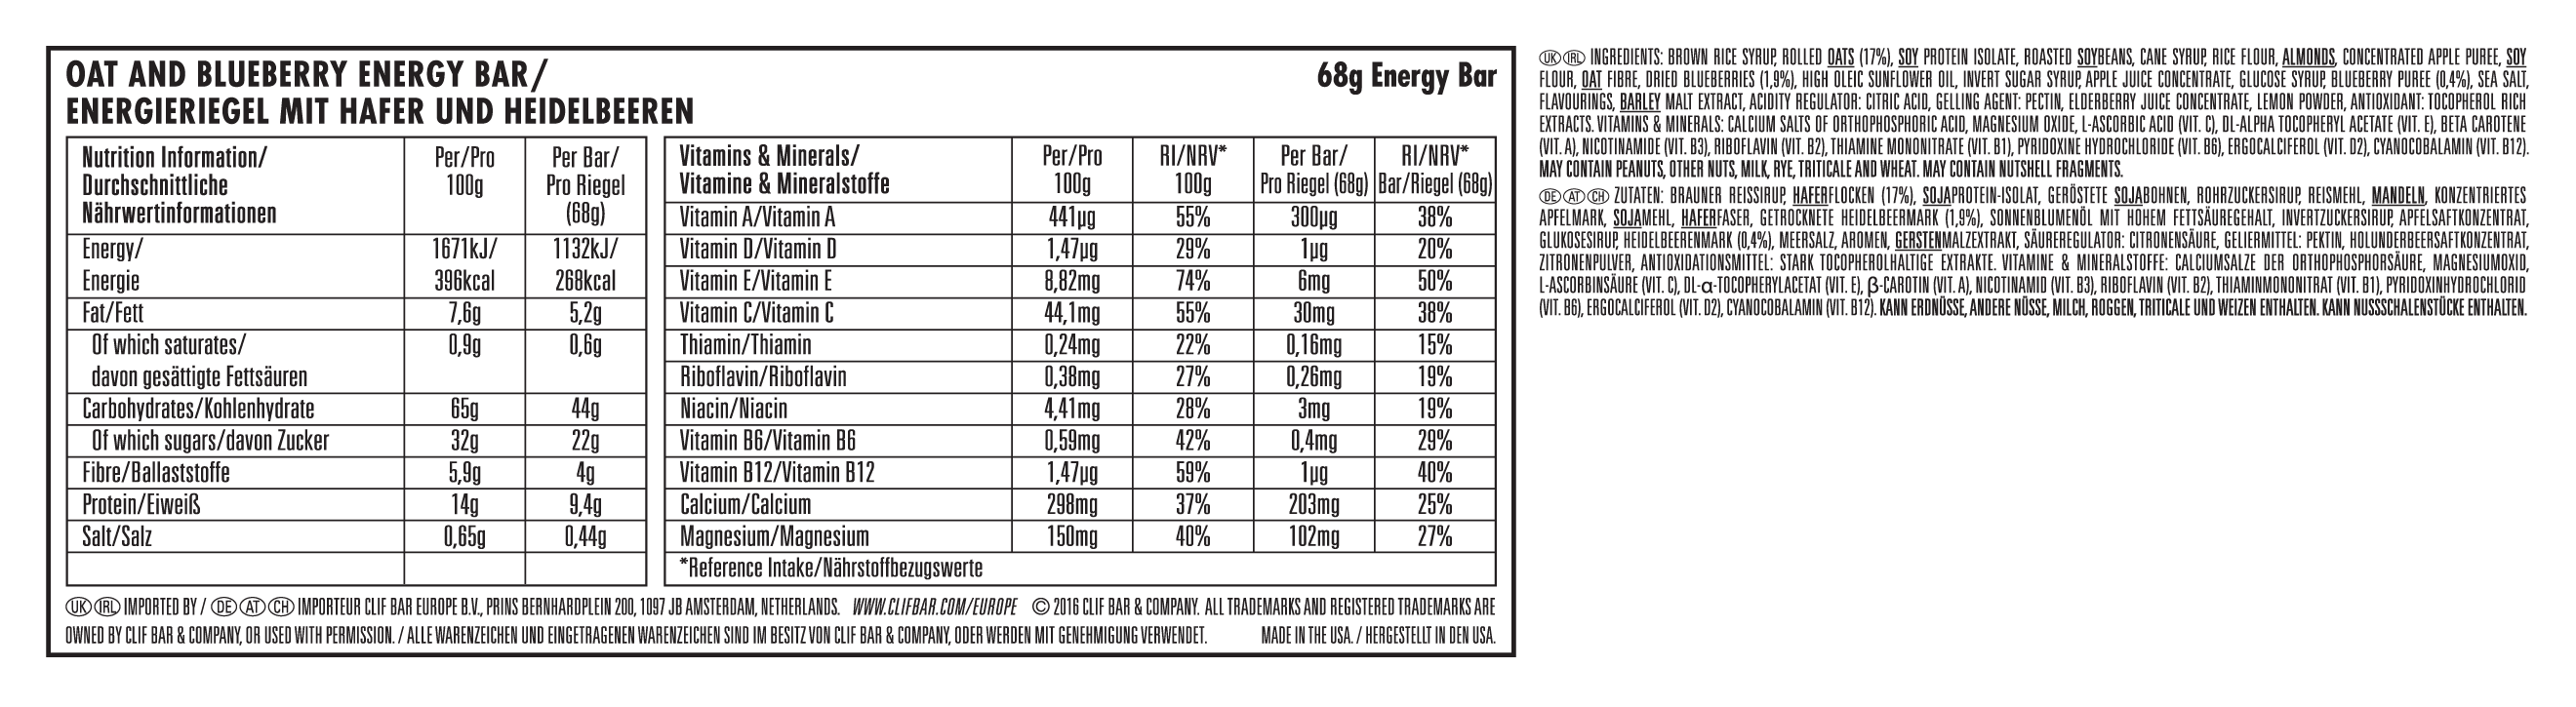 Blueberry Crisp Nutritional Facts